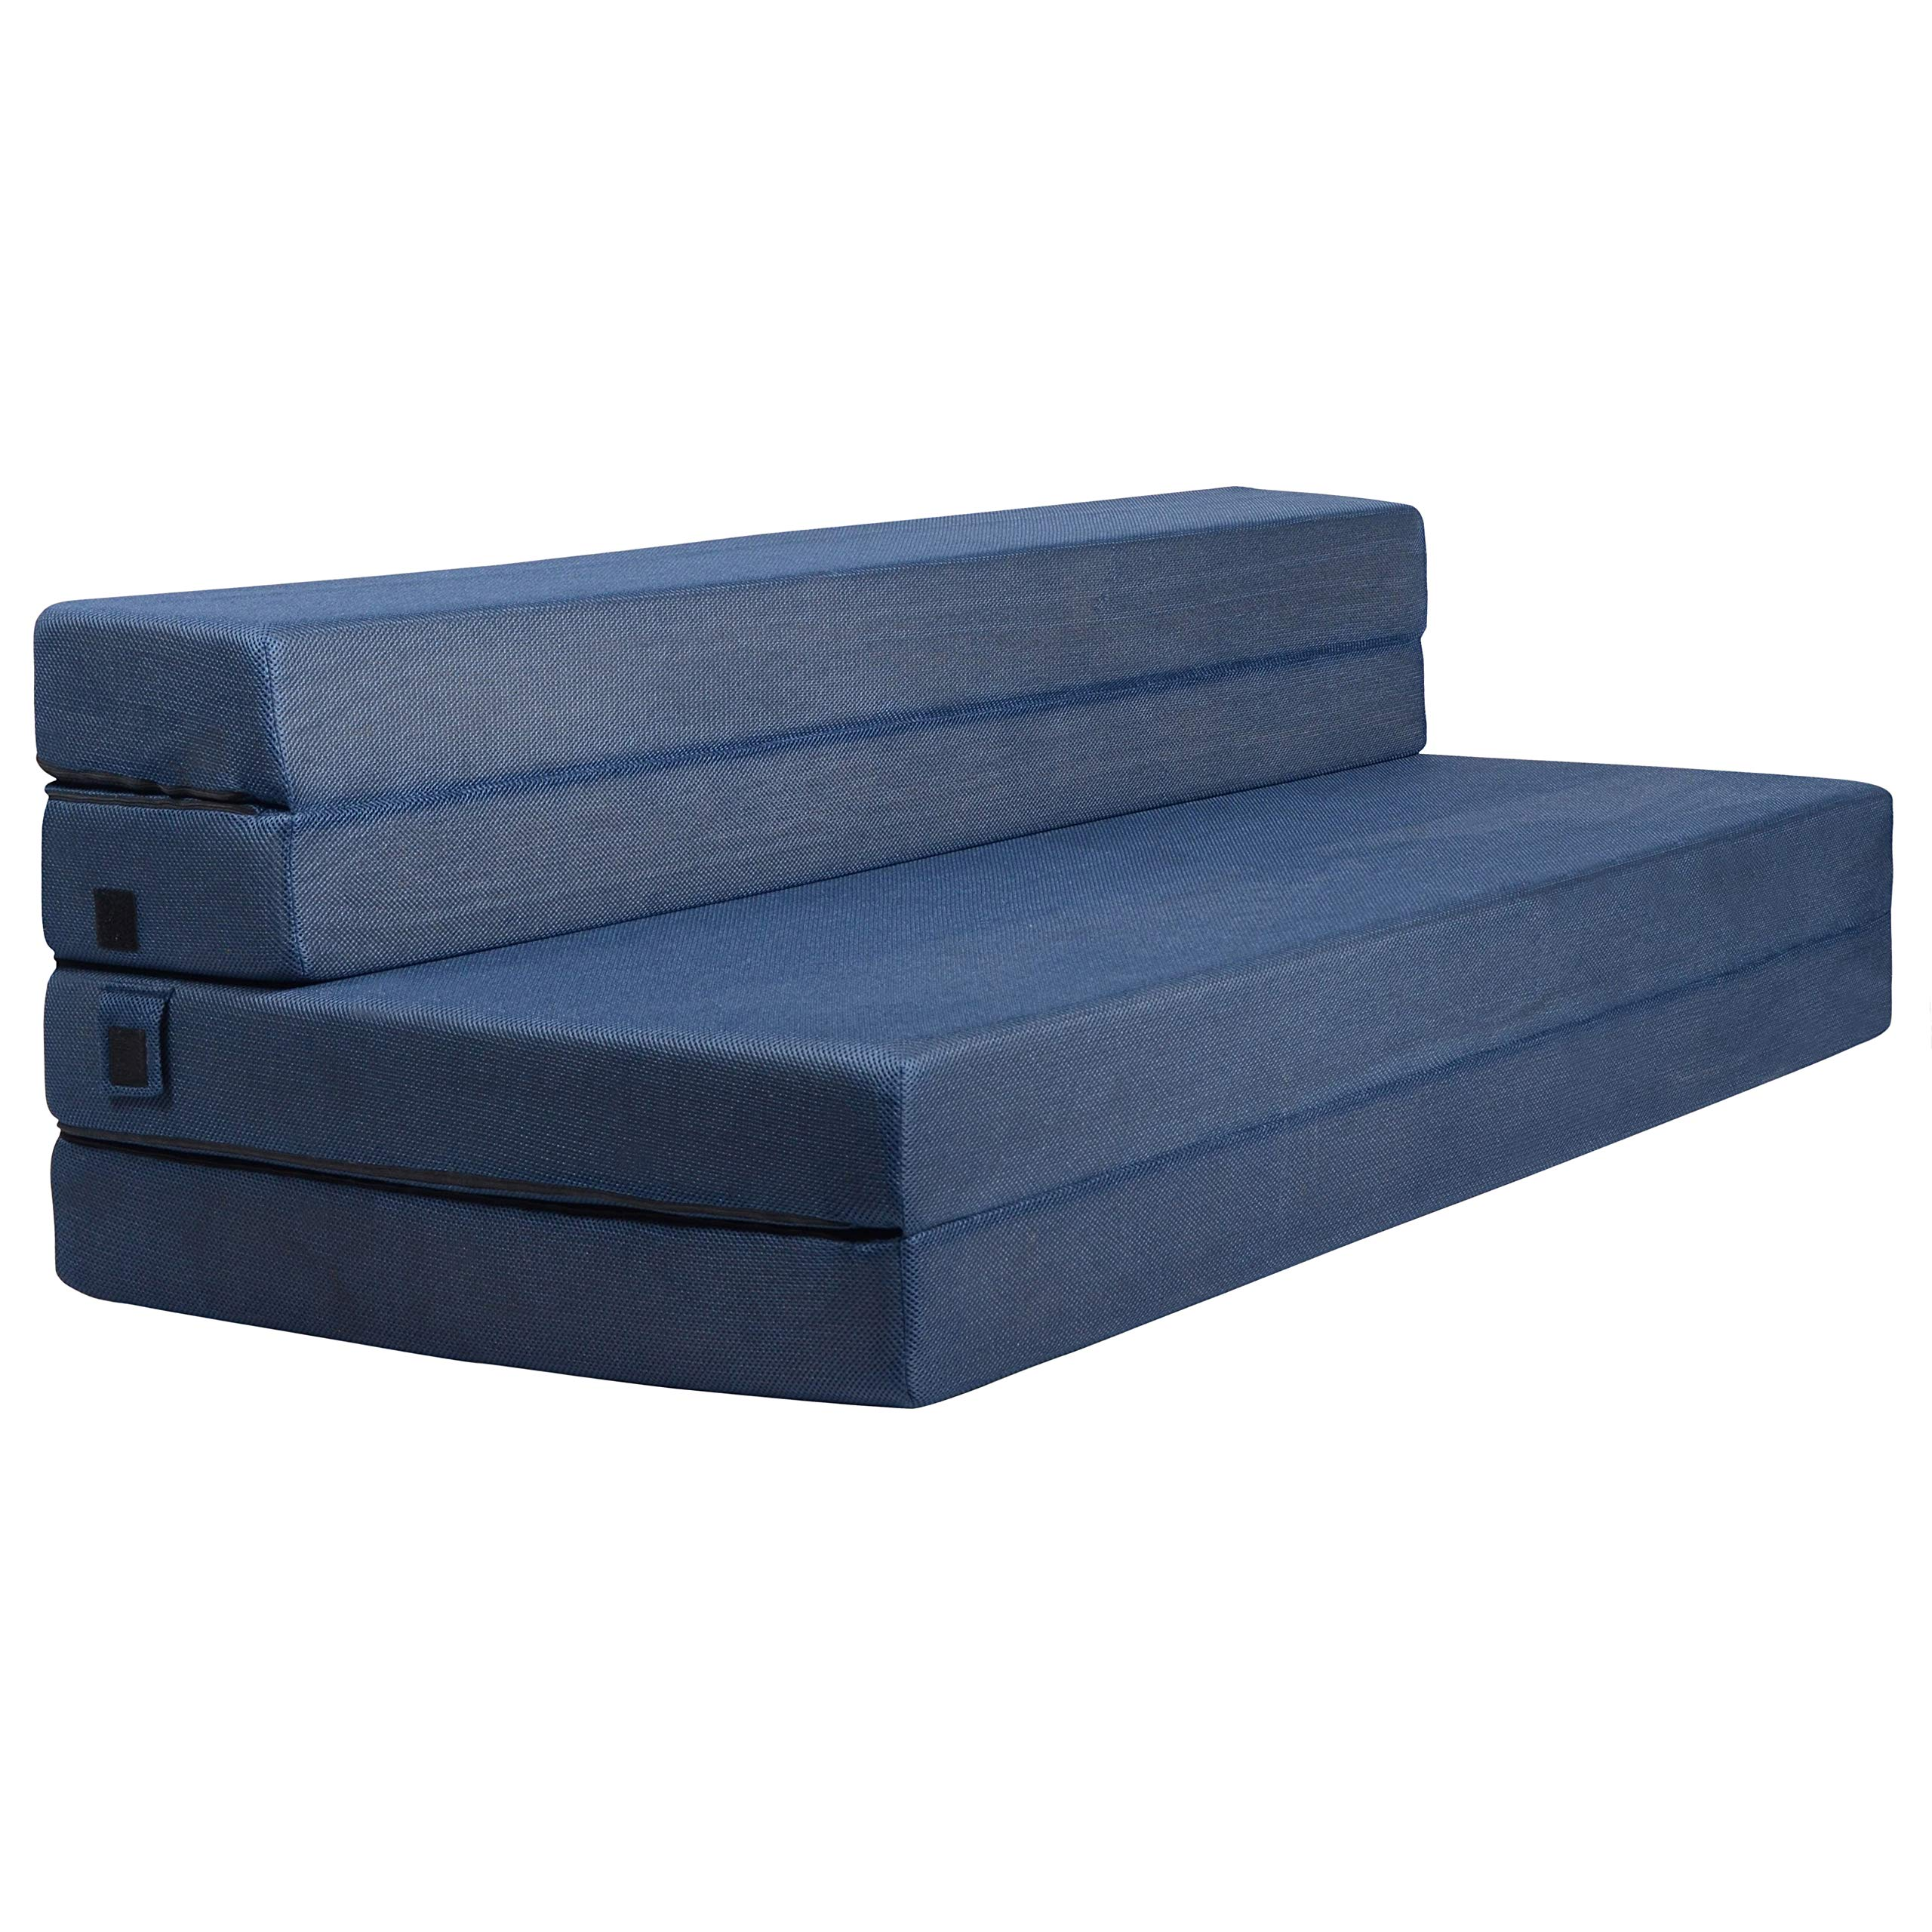 Milliard Tri-Fold Foam Folding Mattress and Sofa Bed for Guests - Queen 78x58x4.5 Inch by Milliard